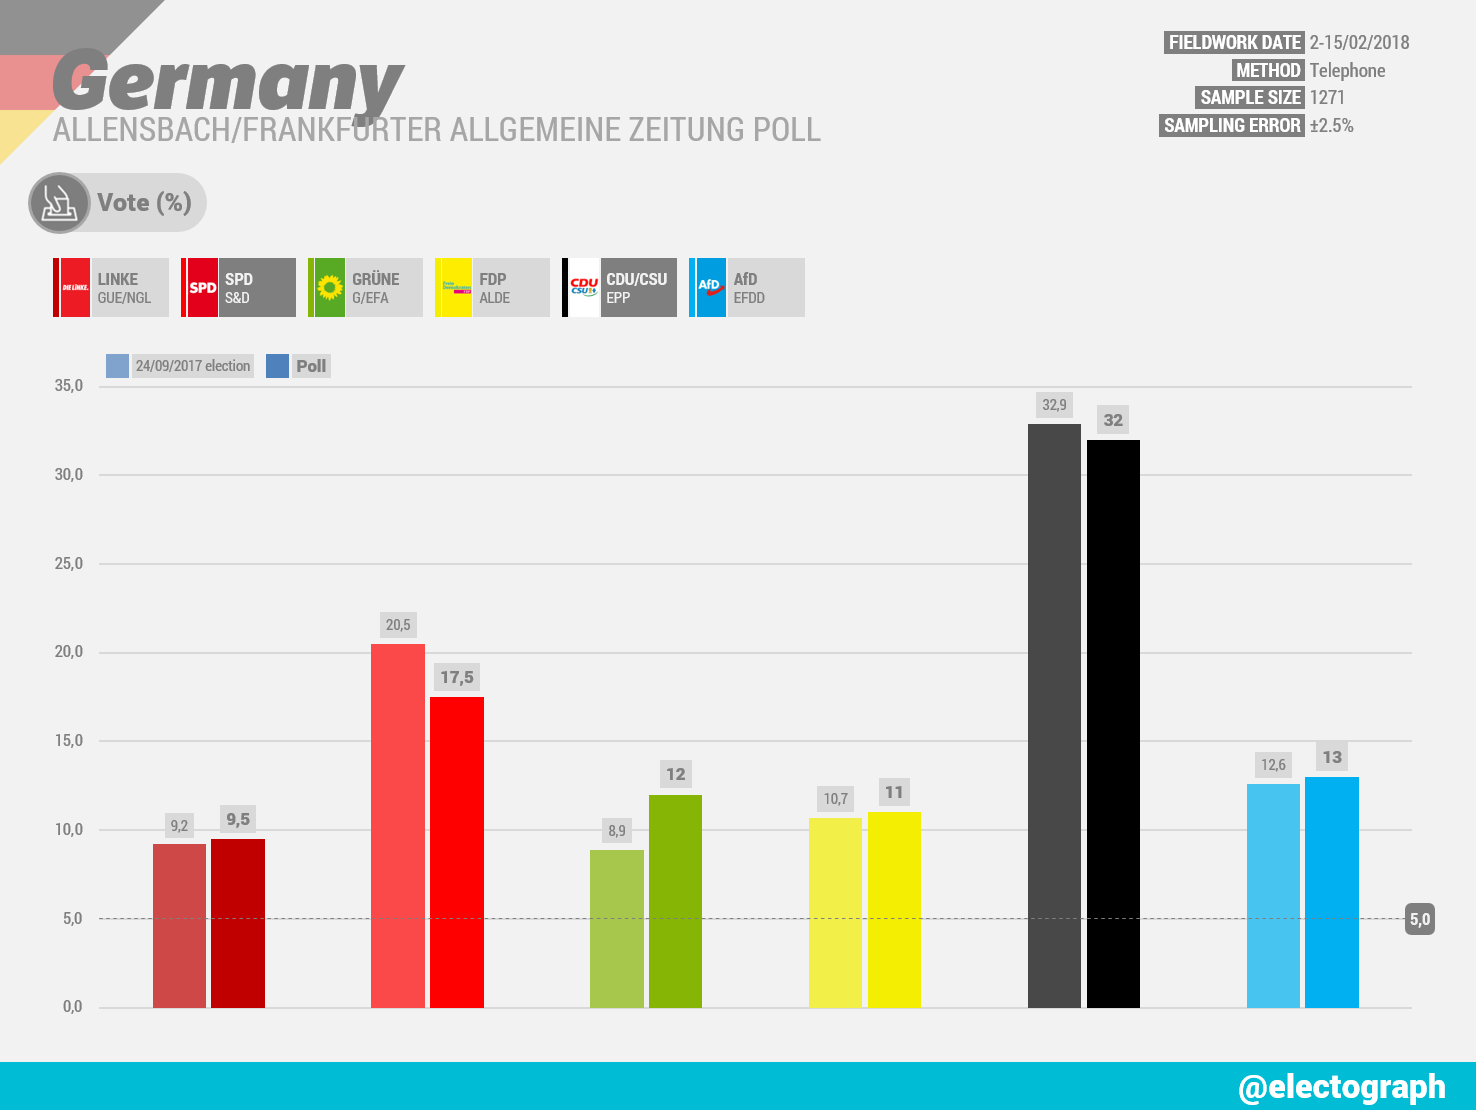 GERMANY Allensbach poll chart for Frankfurter Allgemeine Zeitung, February 2018